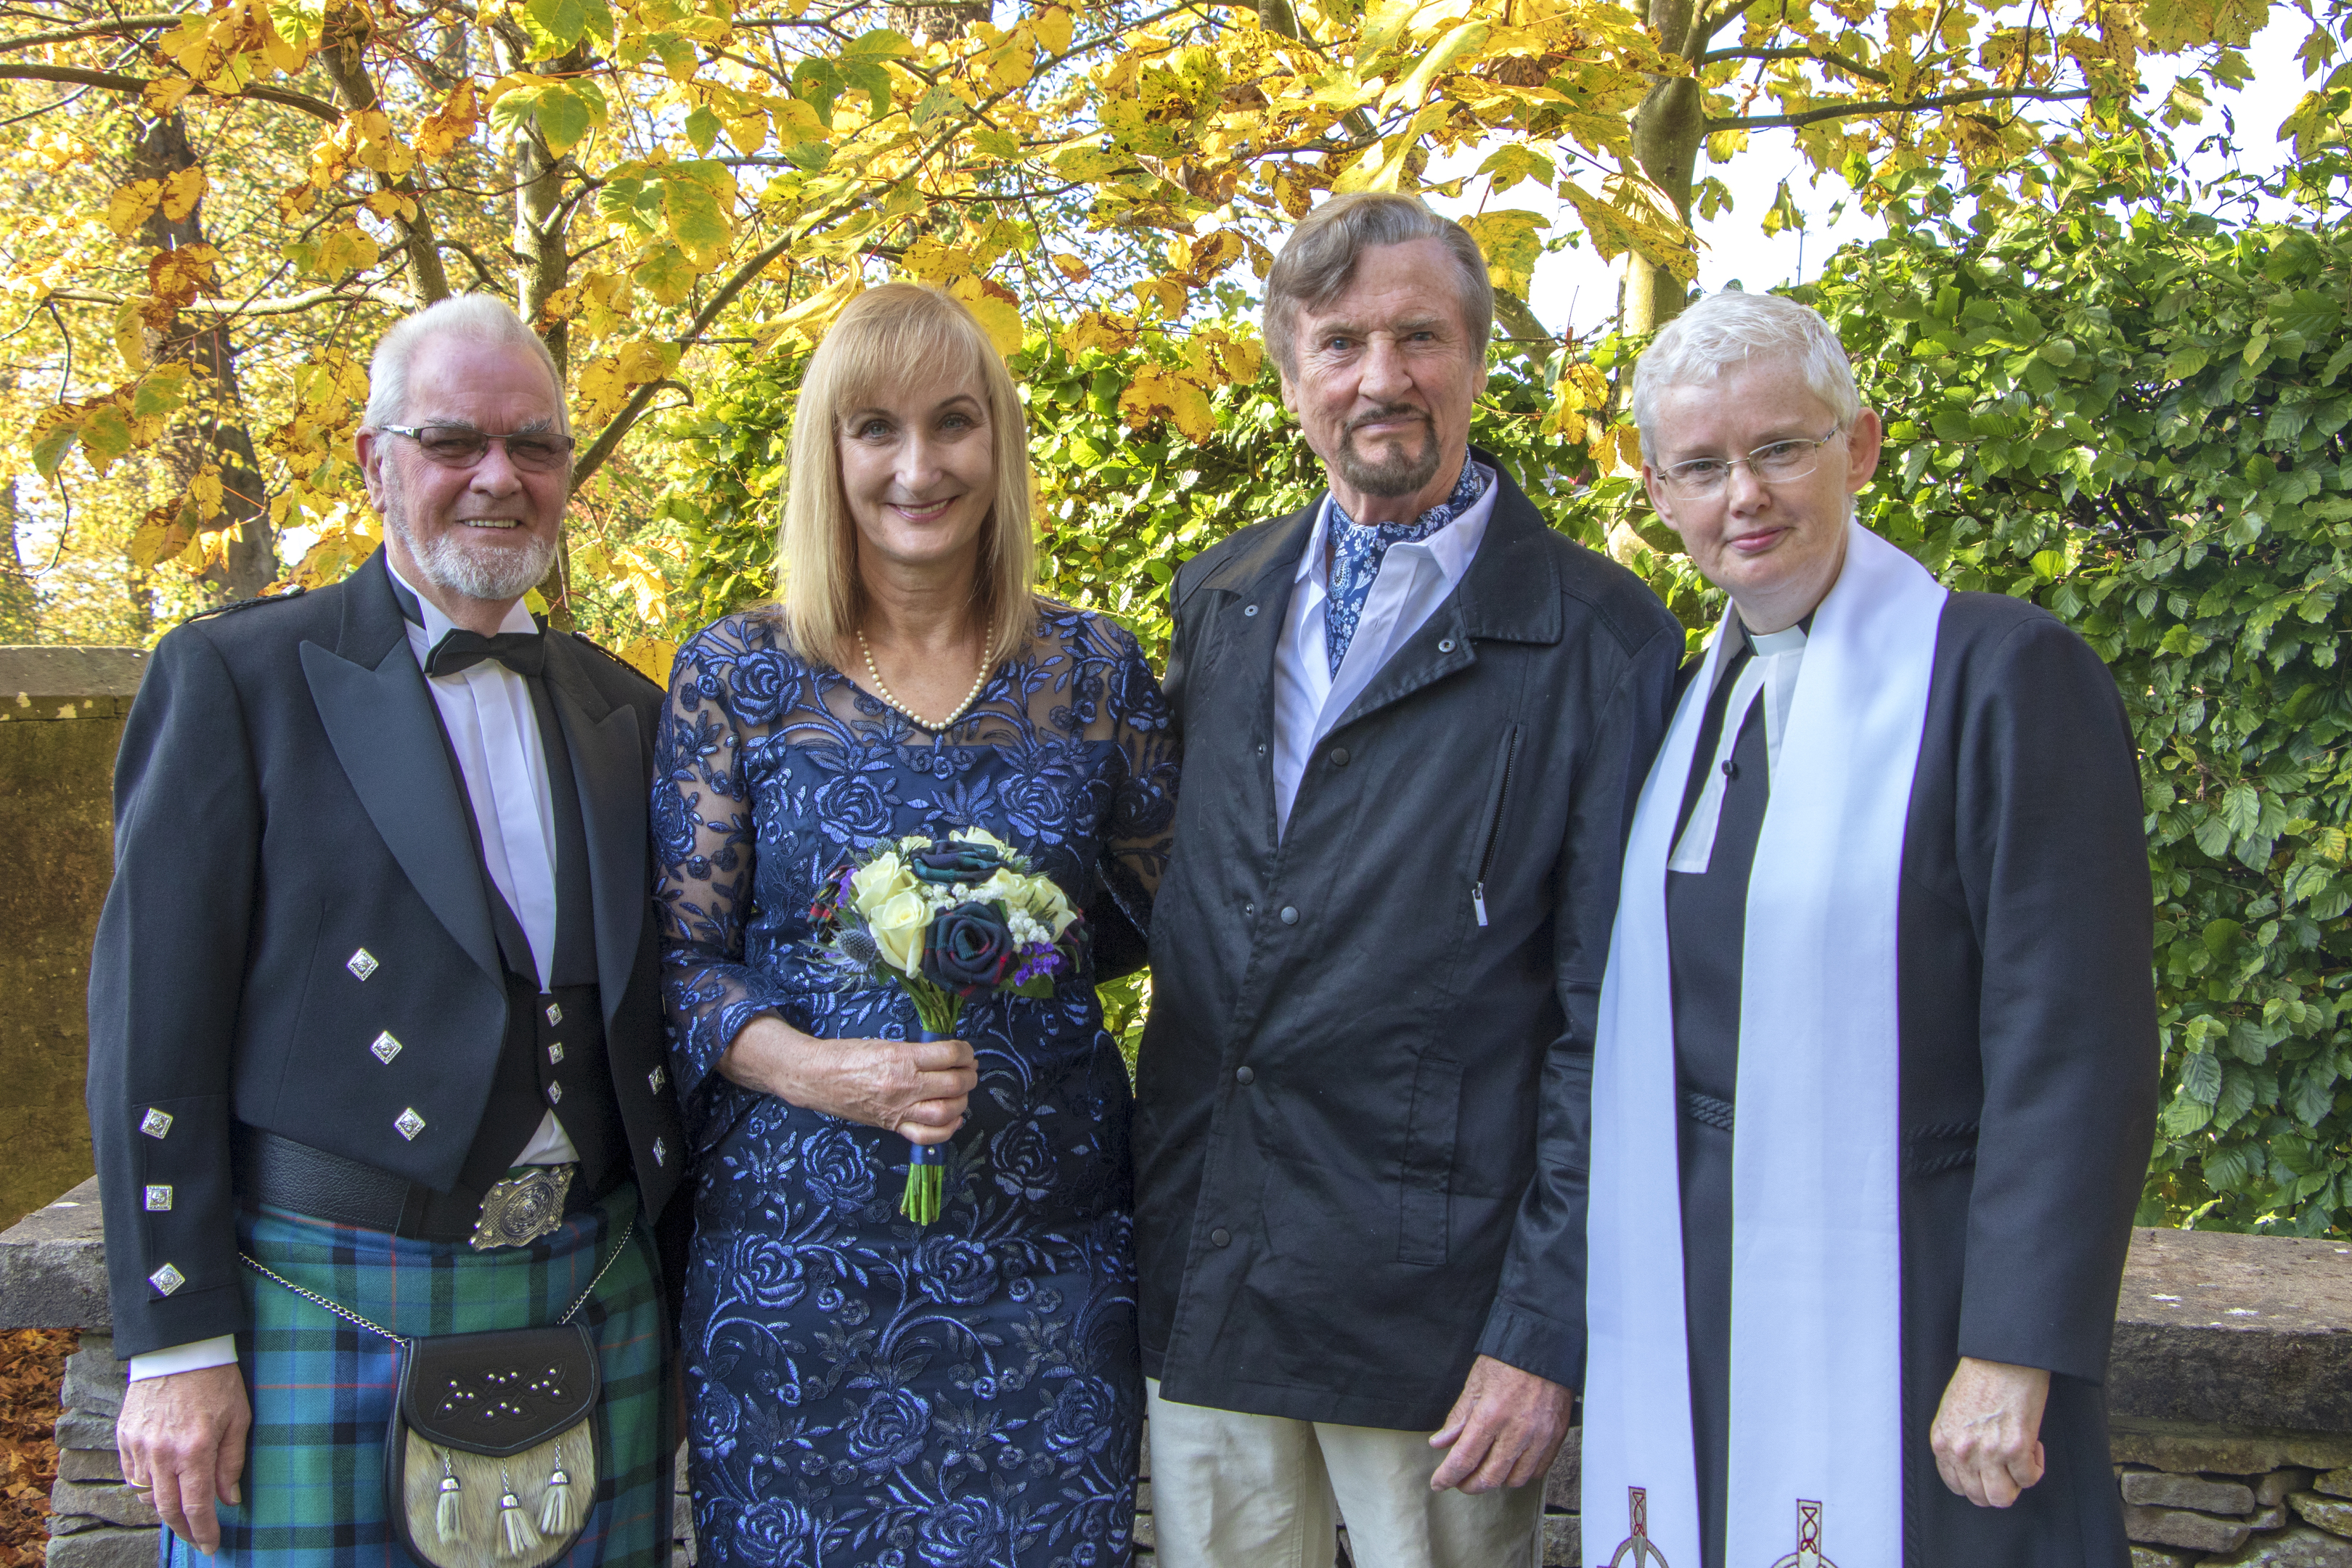 Newlyweds Kate and Paul Wright (centre) with church beadle Ian Lowden and Reverend Marjory MacLean.